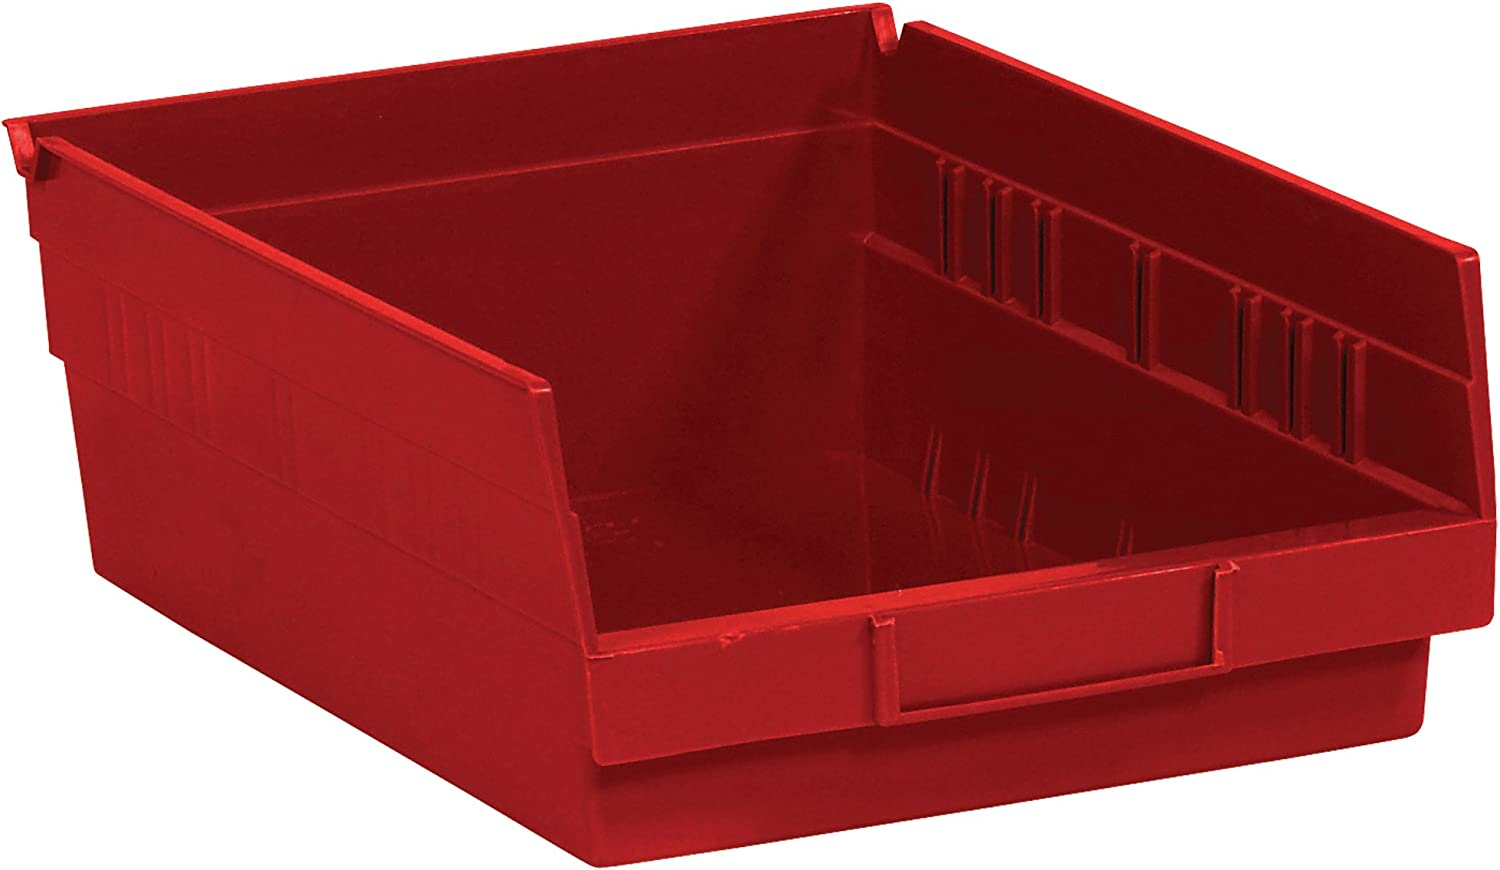 Poly Inventory cleanup selling sale Bag Guy Plastic Shelf Tucson Mall Bin Boxes 11 5 8 Red x 3 4